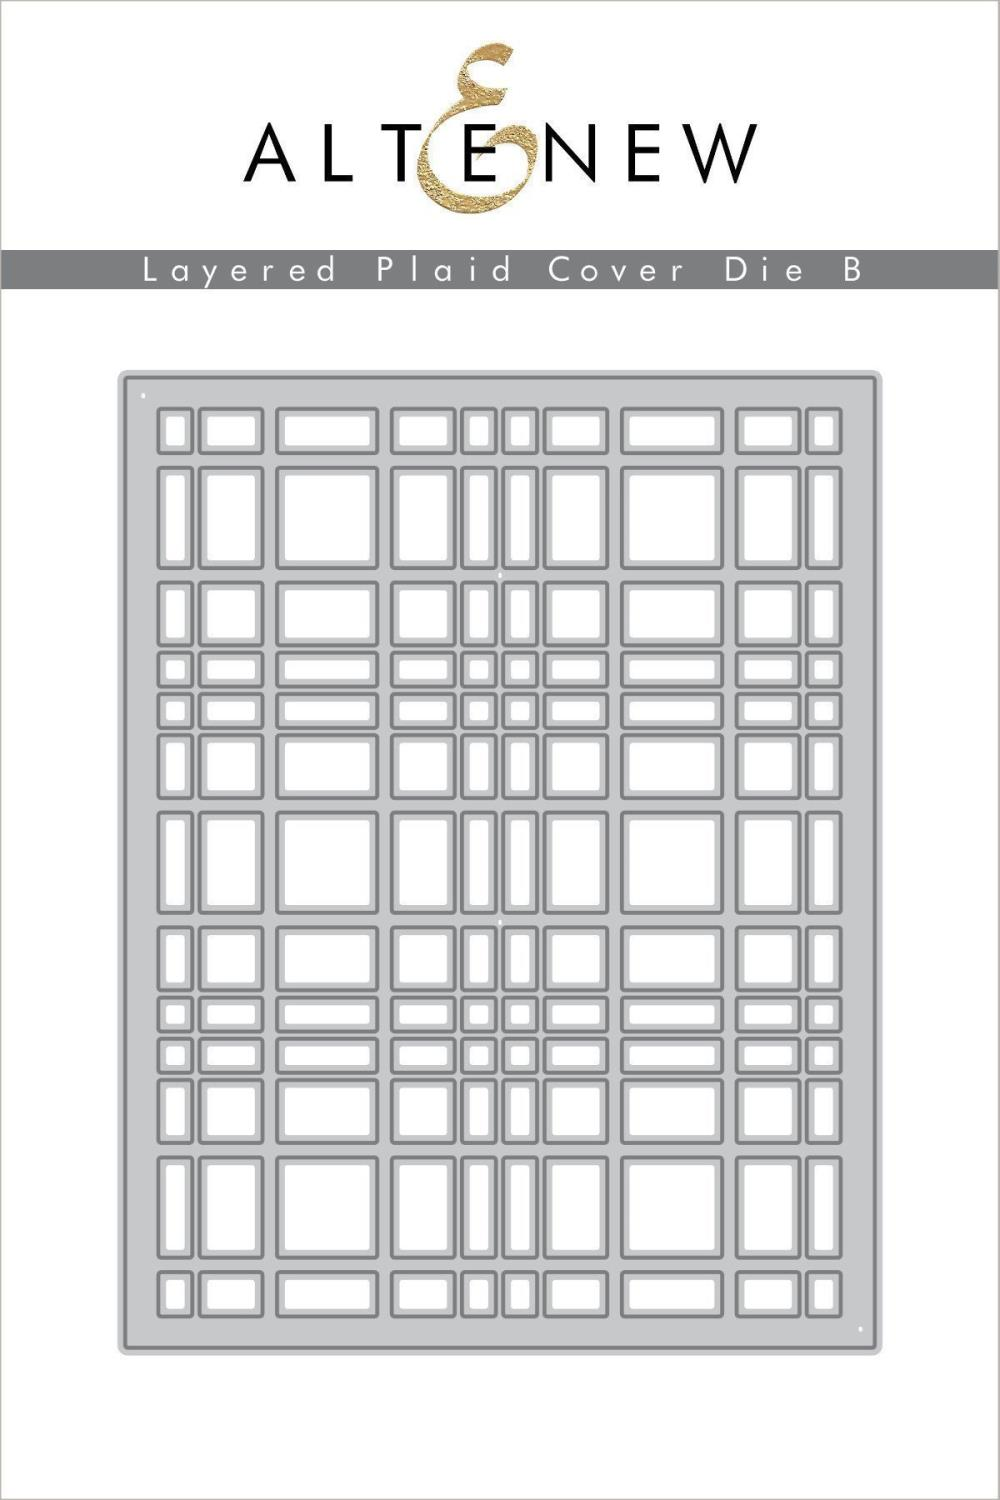 Altenew - Layered Plaid Cover Die B